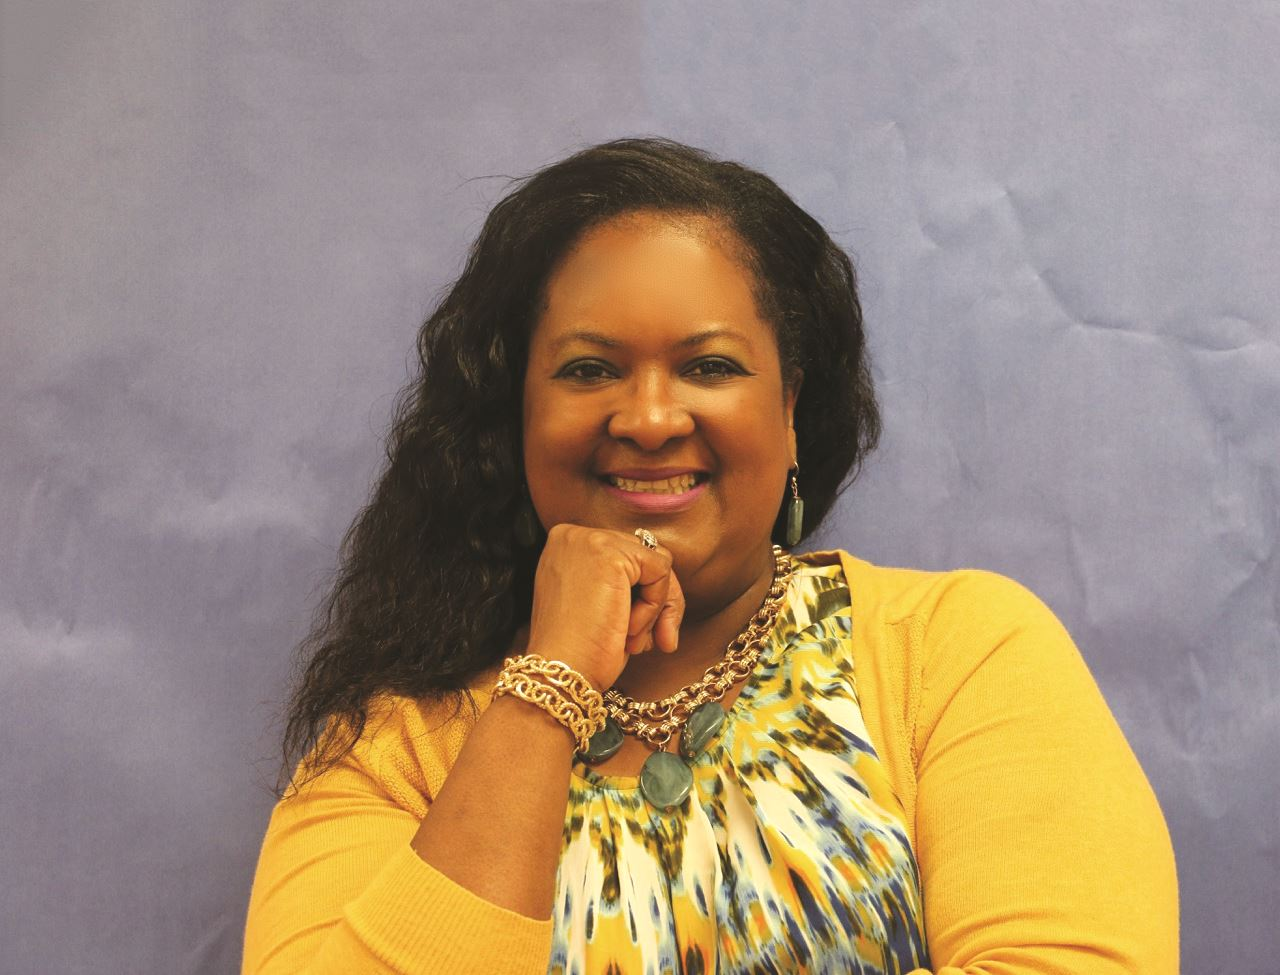 Image of Vanessa Brown, Principal.